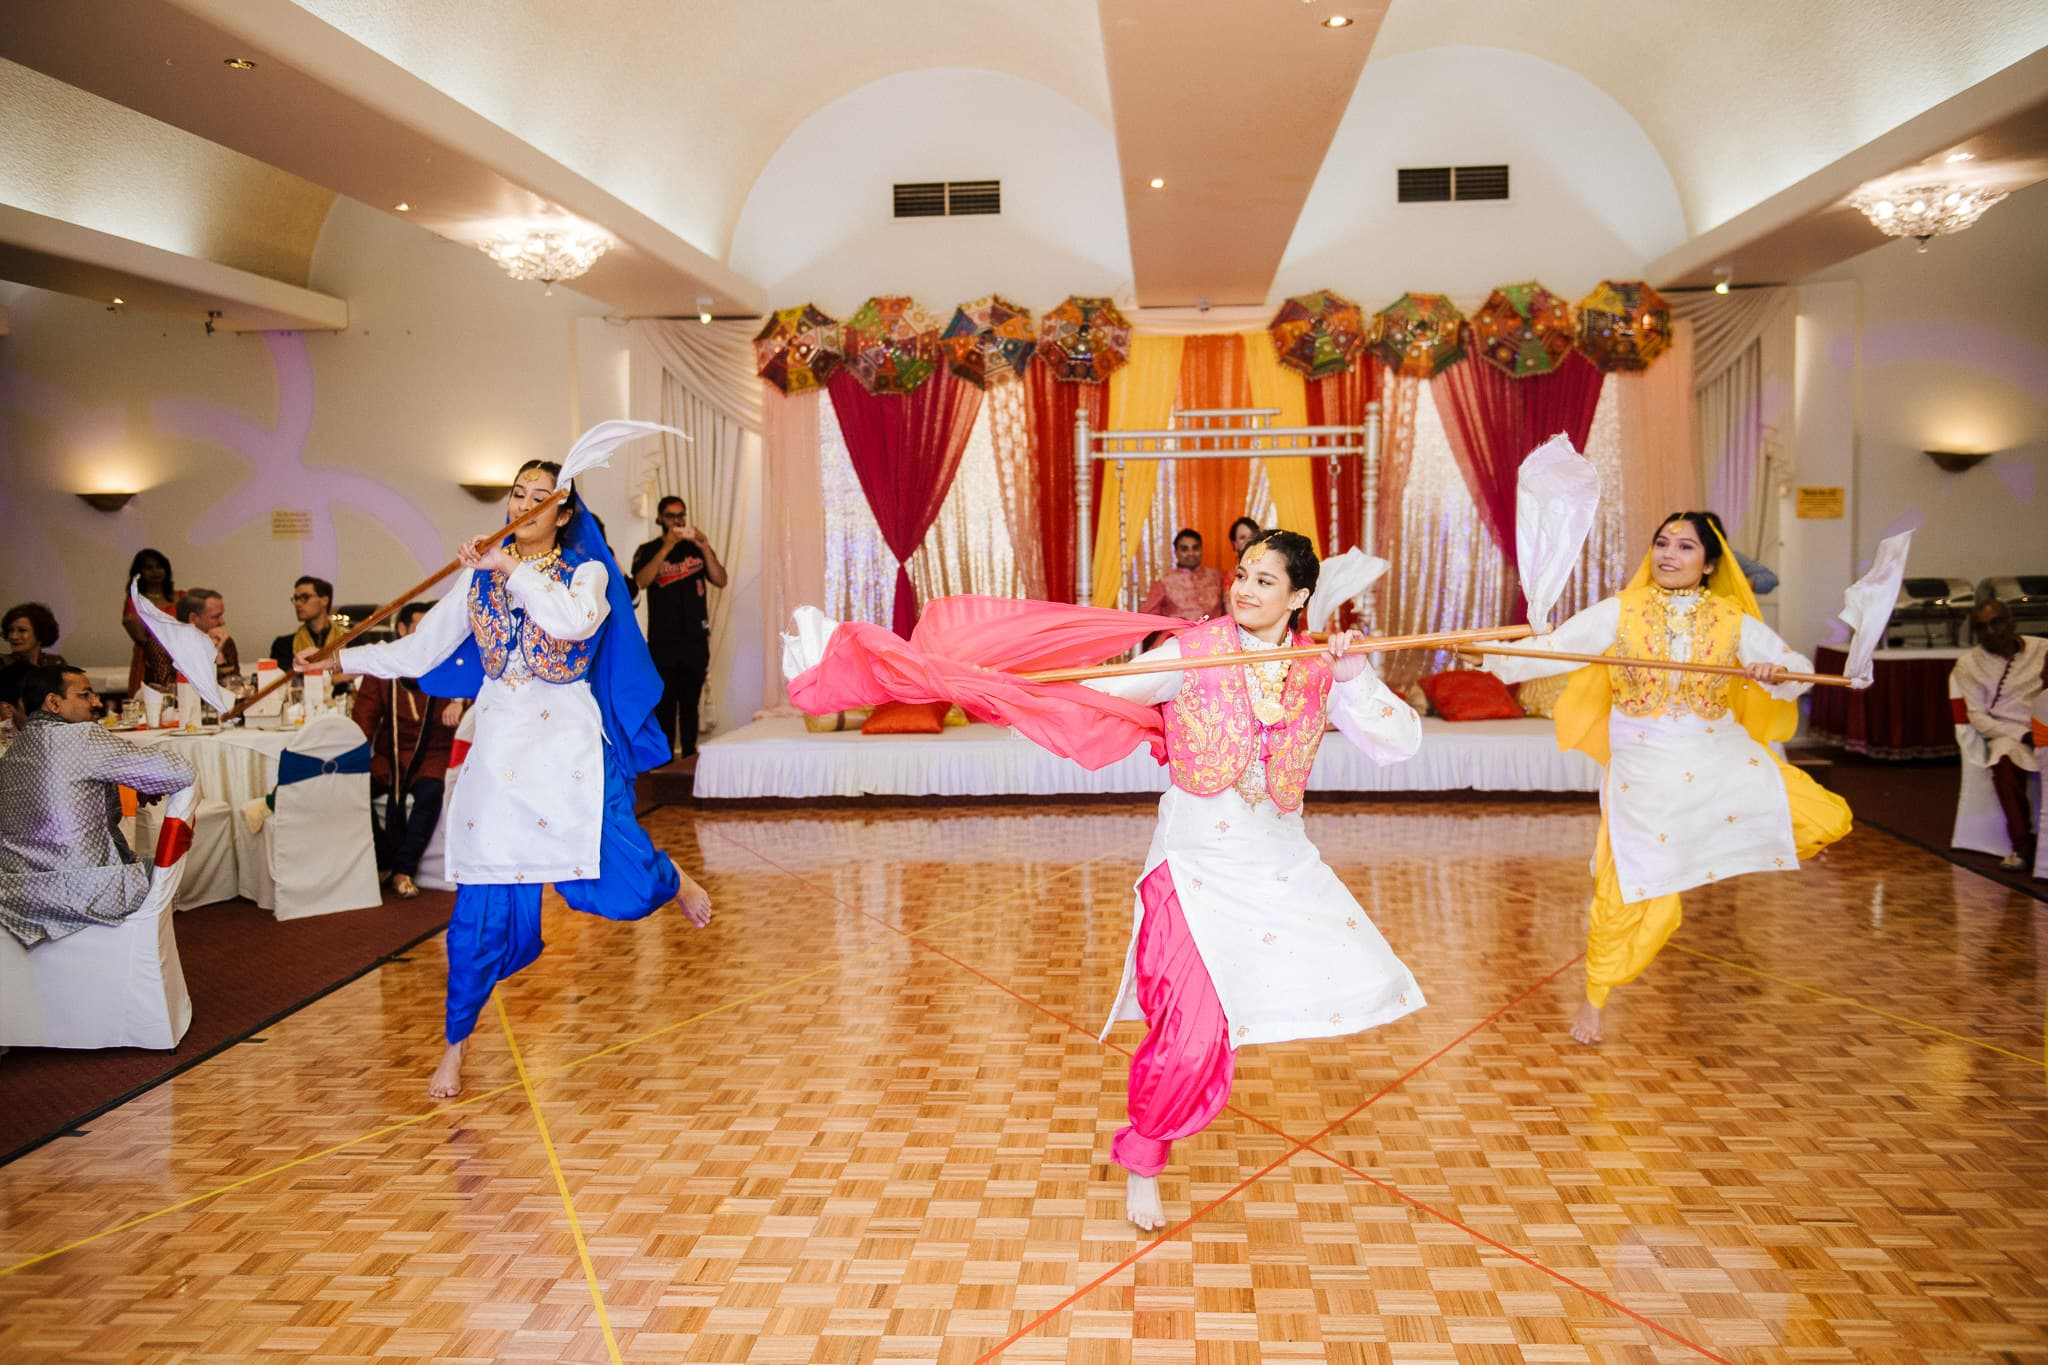 Claire and Rohit's colourful Sangeet party took place at Spirit Of India in Melbourne with Indian wedding decor by Rupali's Mandaps.